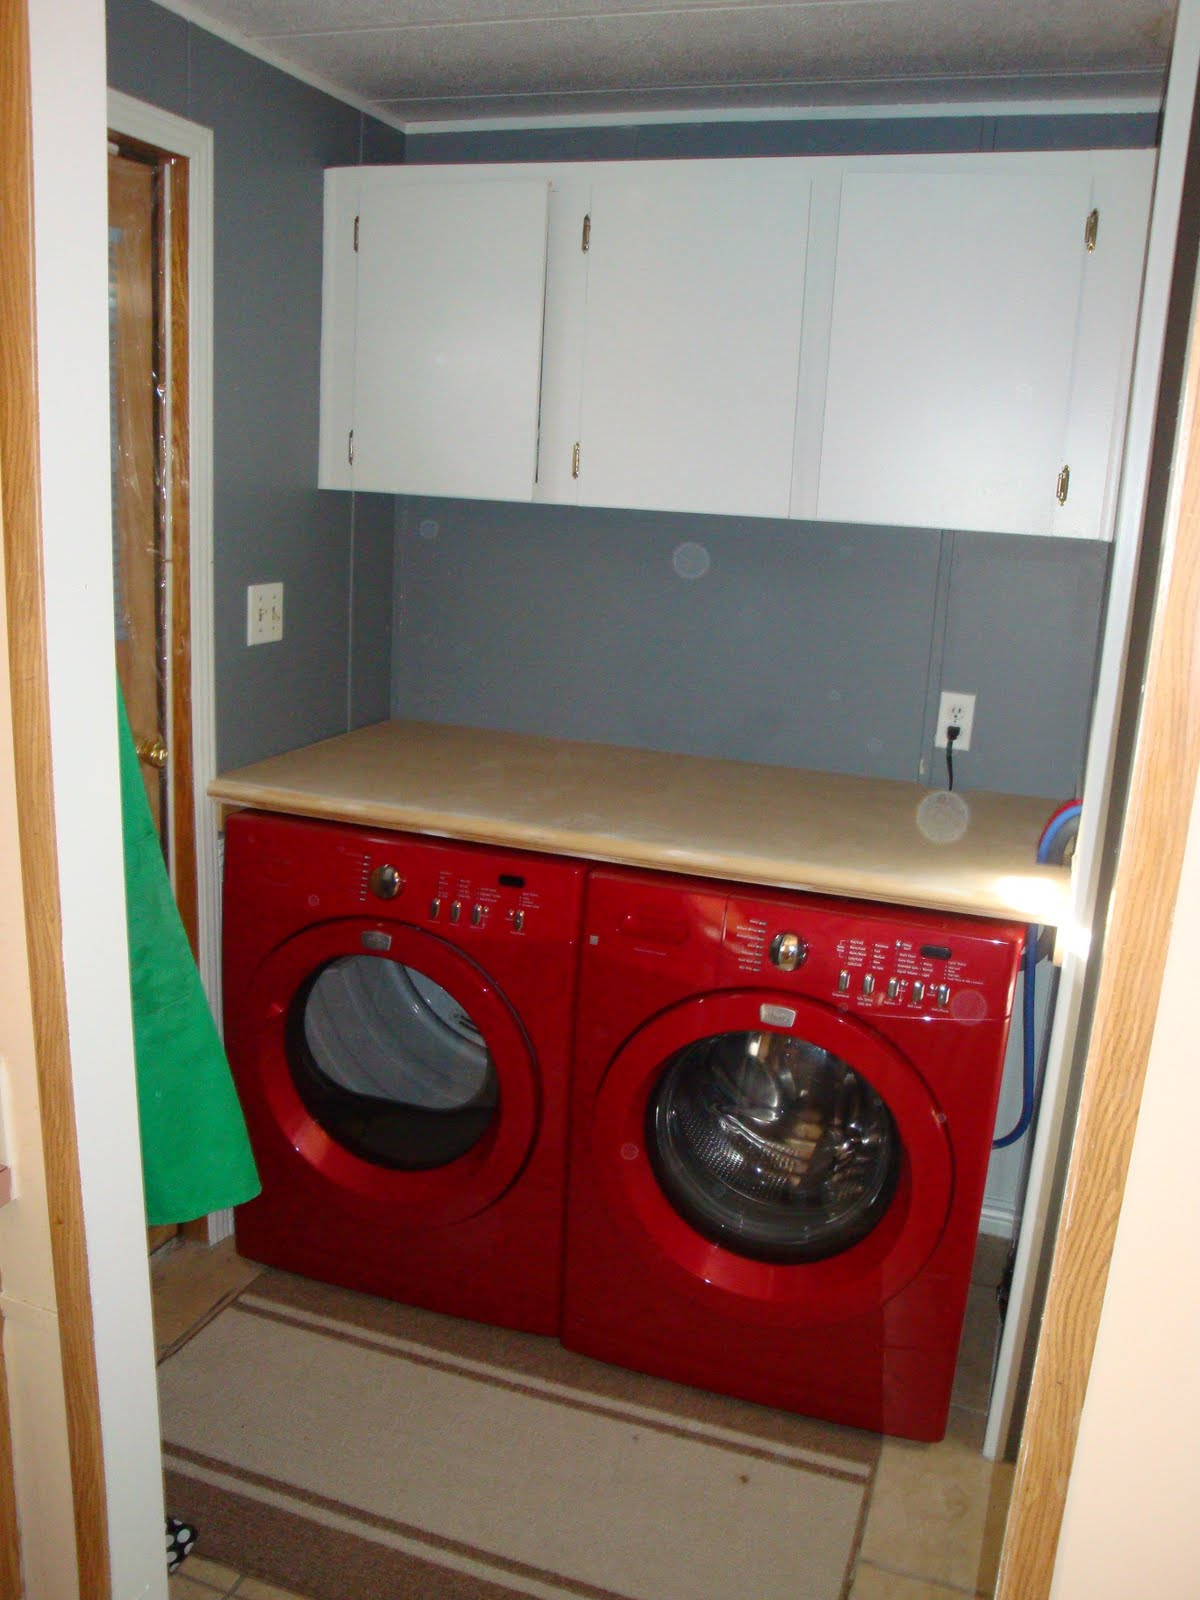 Countertop Above Washer And Dryer : LAUNDRY ROOM OVER WASHER DRYER COUNTER WASHERS & DRYERS